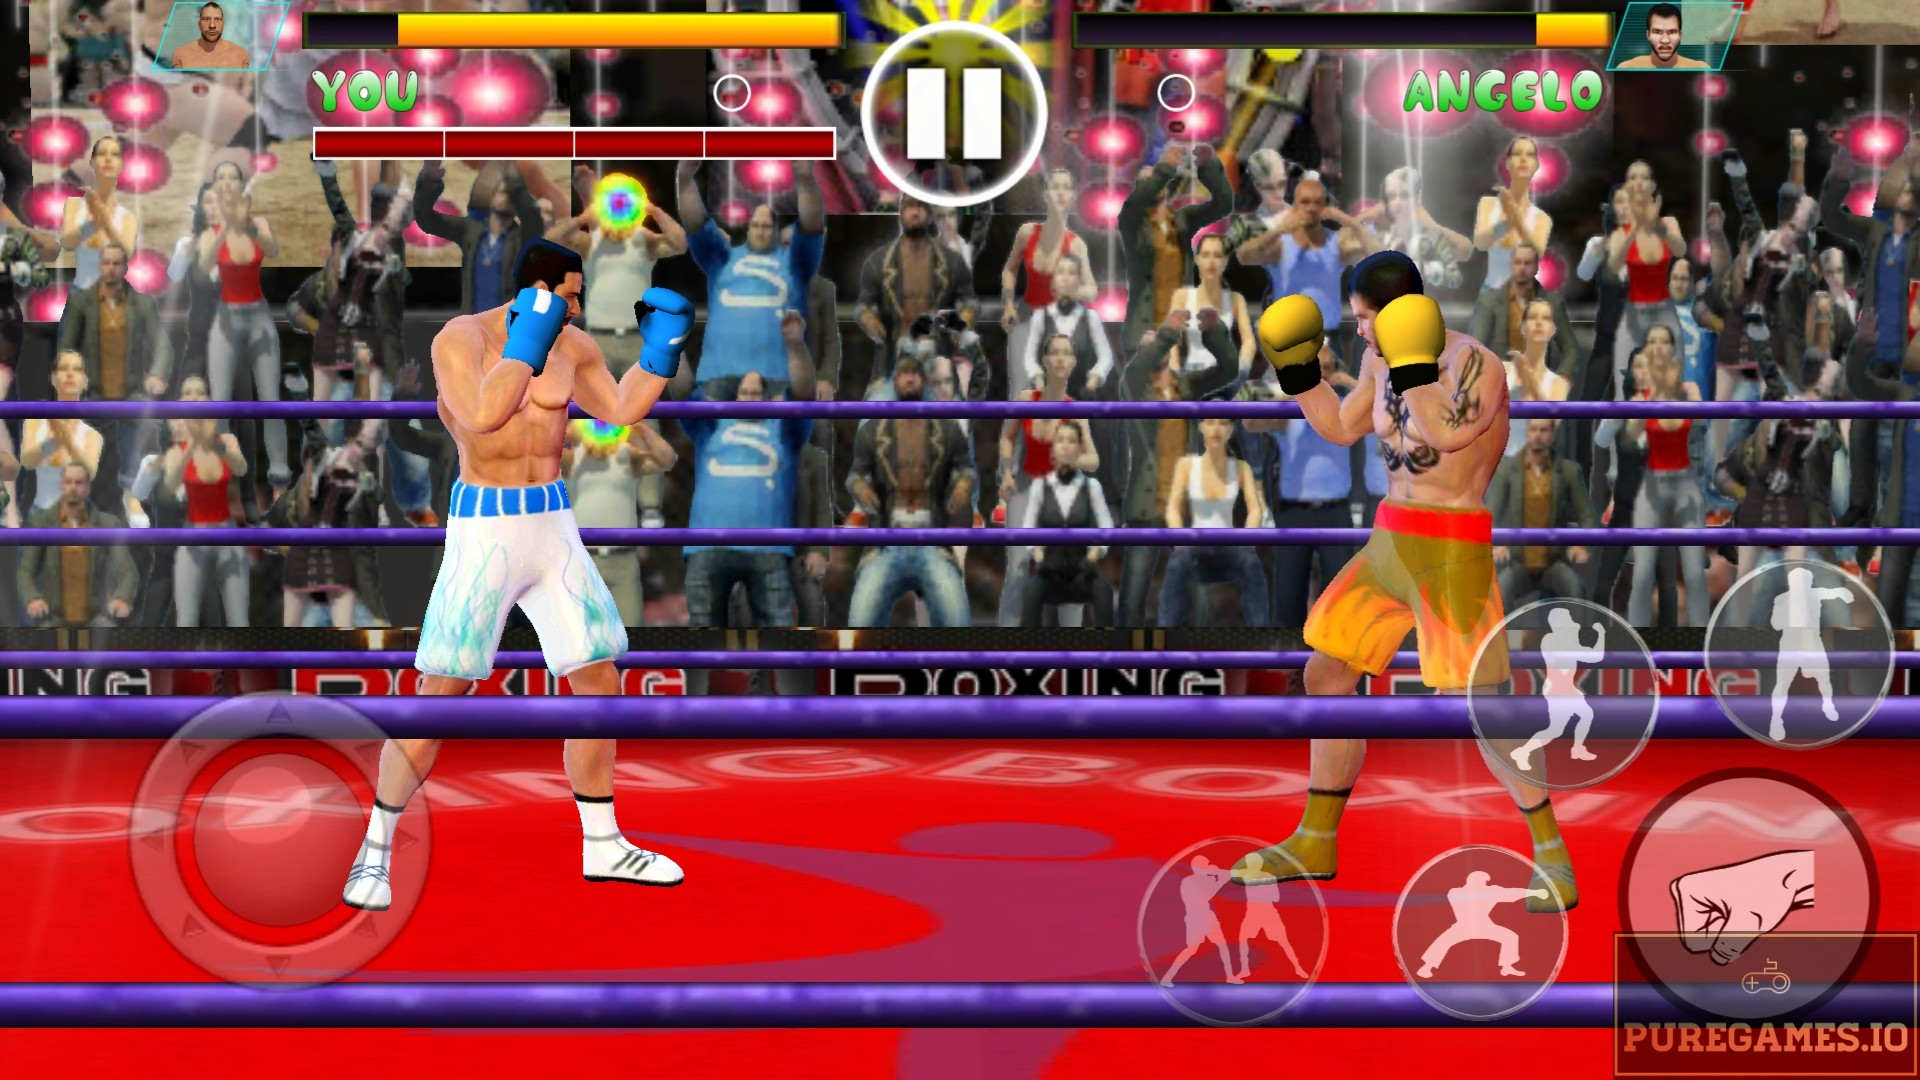 Download Ninja Punch Boxing Warrior: Kung Fu Karate Fighter APK - For Android 6